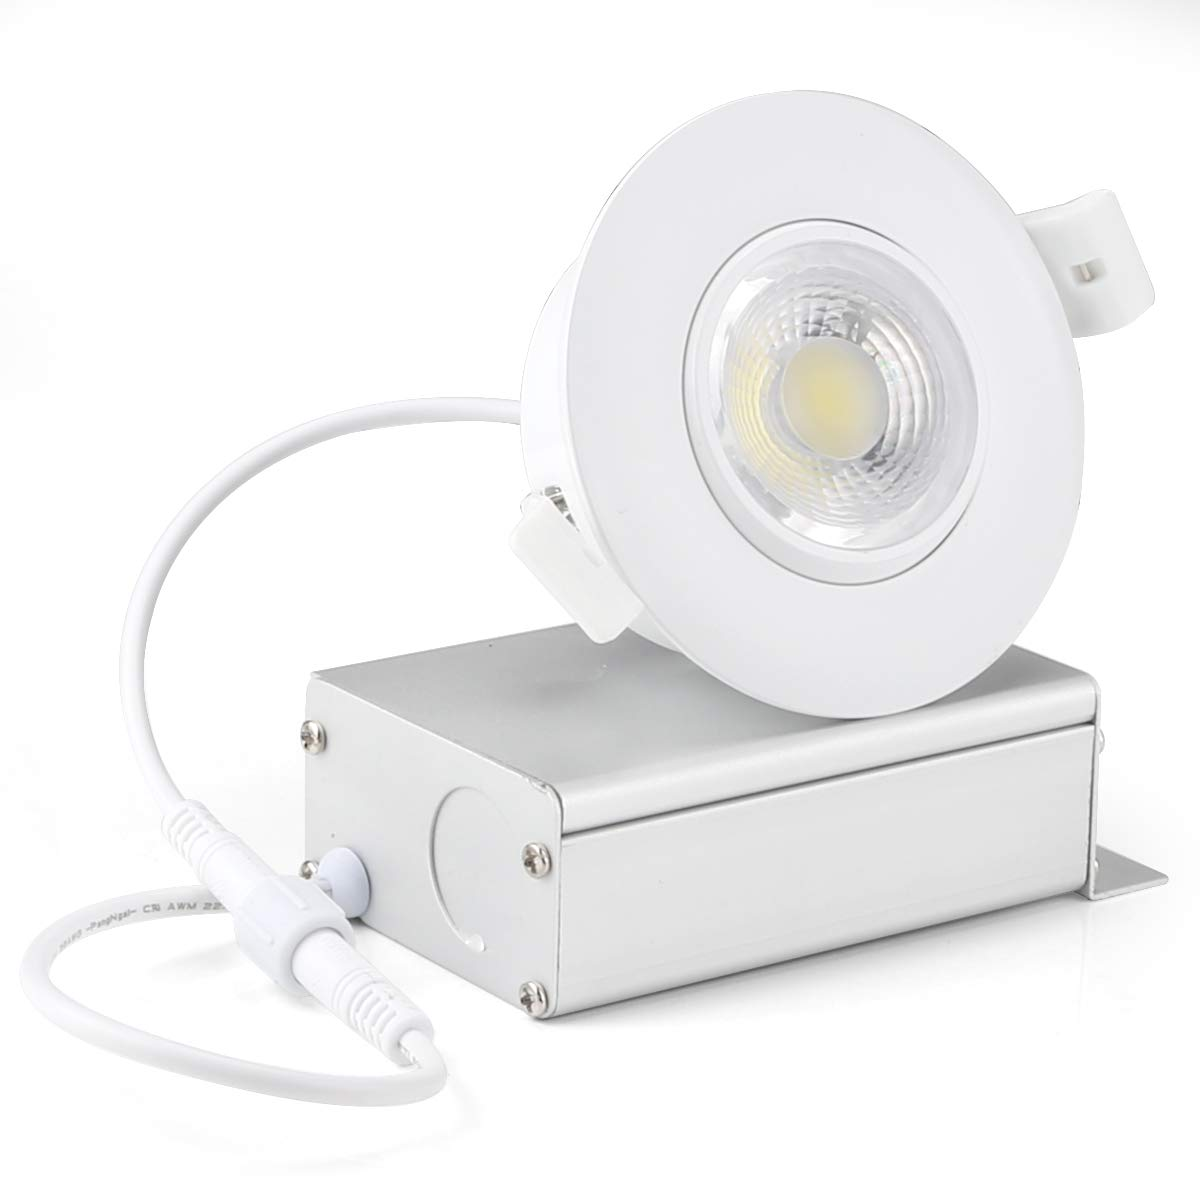 (4 Pack) NICKLED 8W 3 inches LED Eyeball Recessed Lighting Kit Dimmable Downlight-Directional Adjustable Fixture Without Can and Trim (65W Replacement) 3000K Warm White,800lm-ETL Energy Star Approved Shenzhen NickLED LED eyeball light